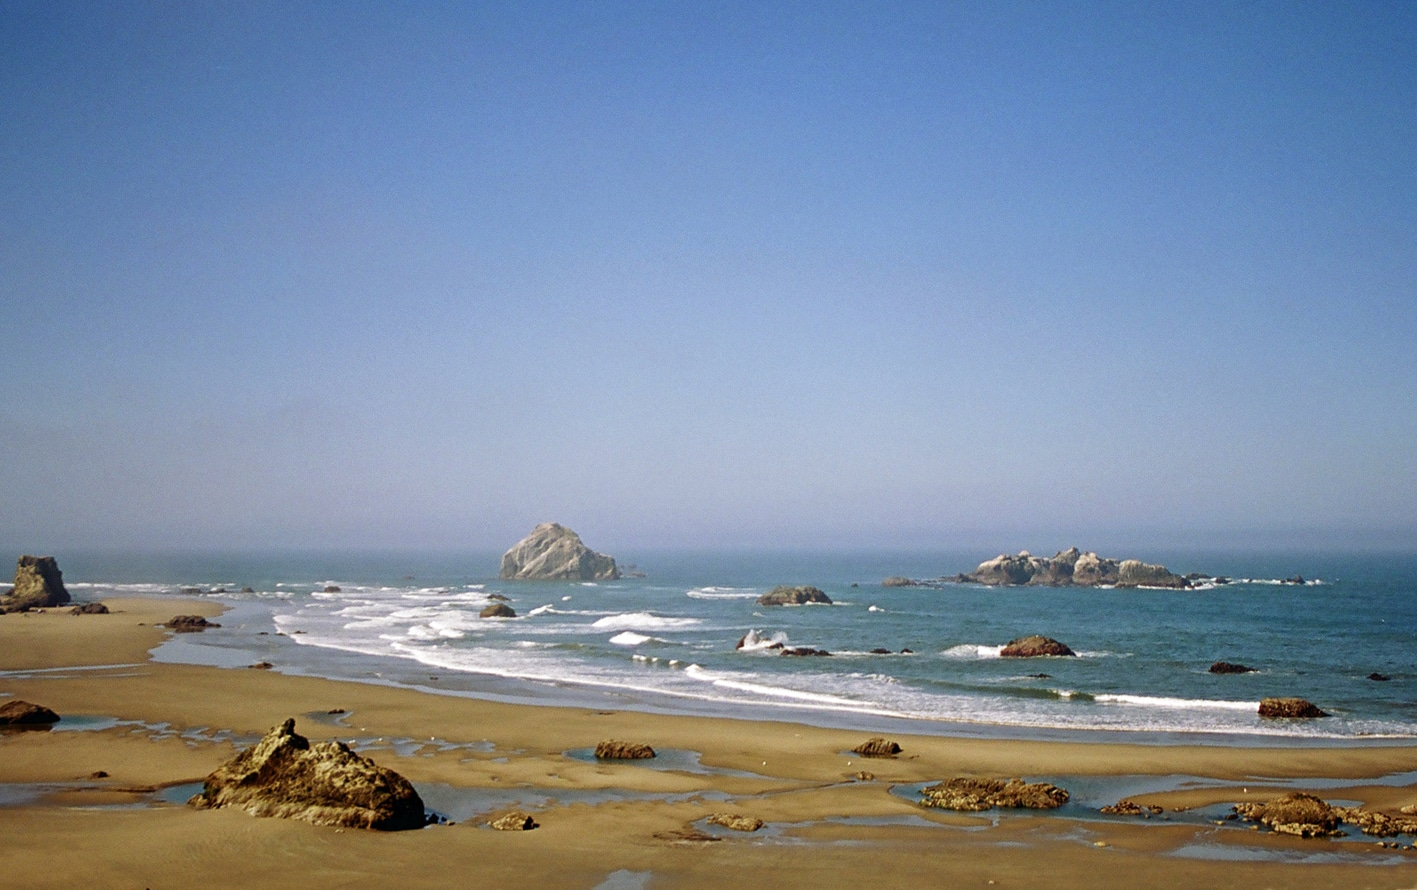 Oregon Coast Highway: Southern section